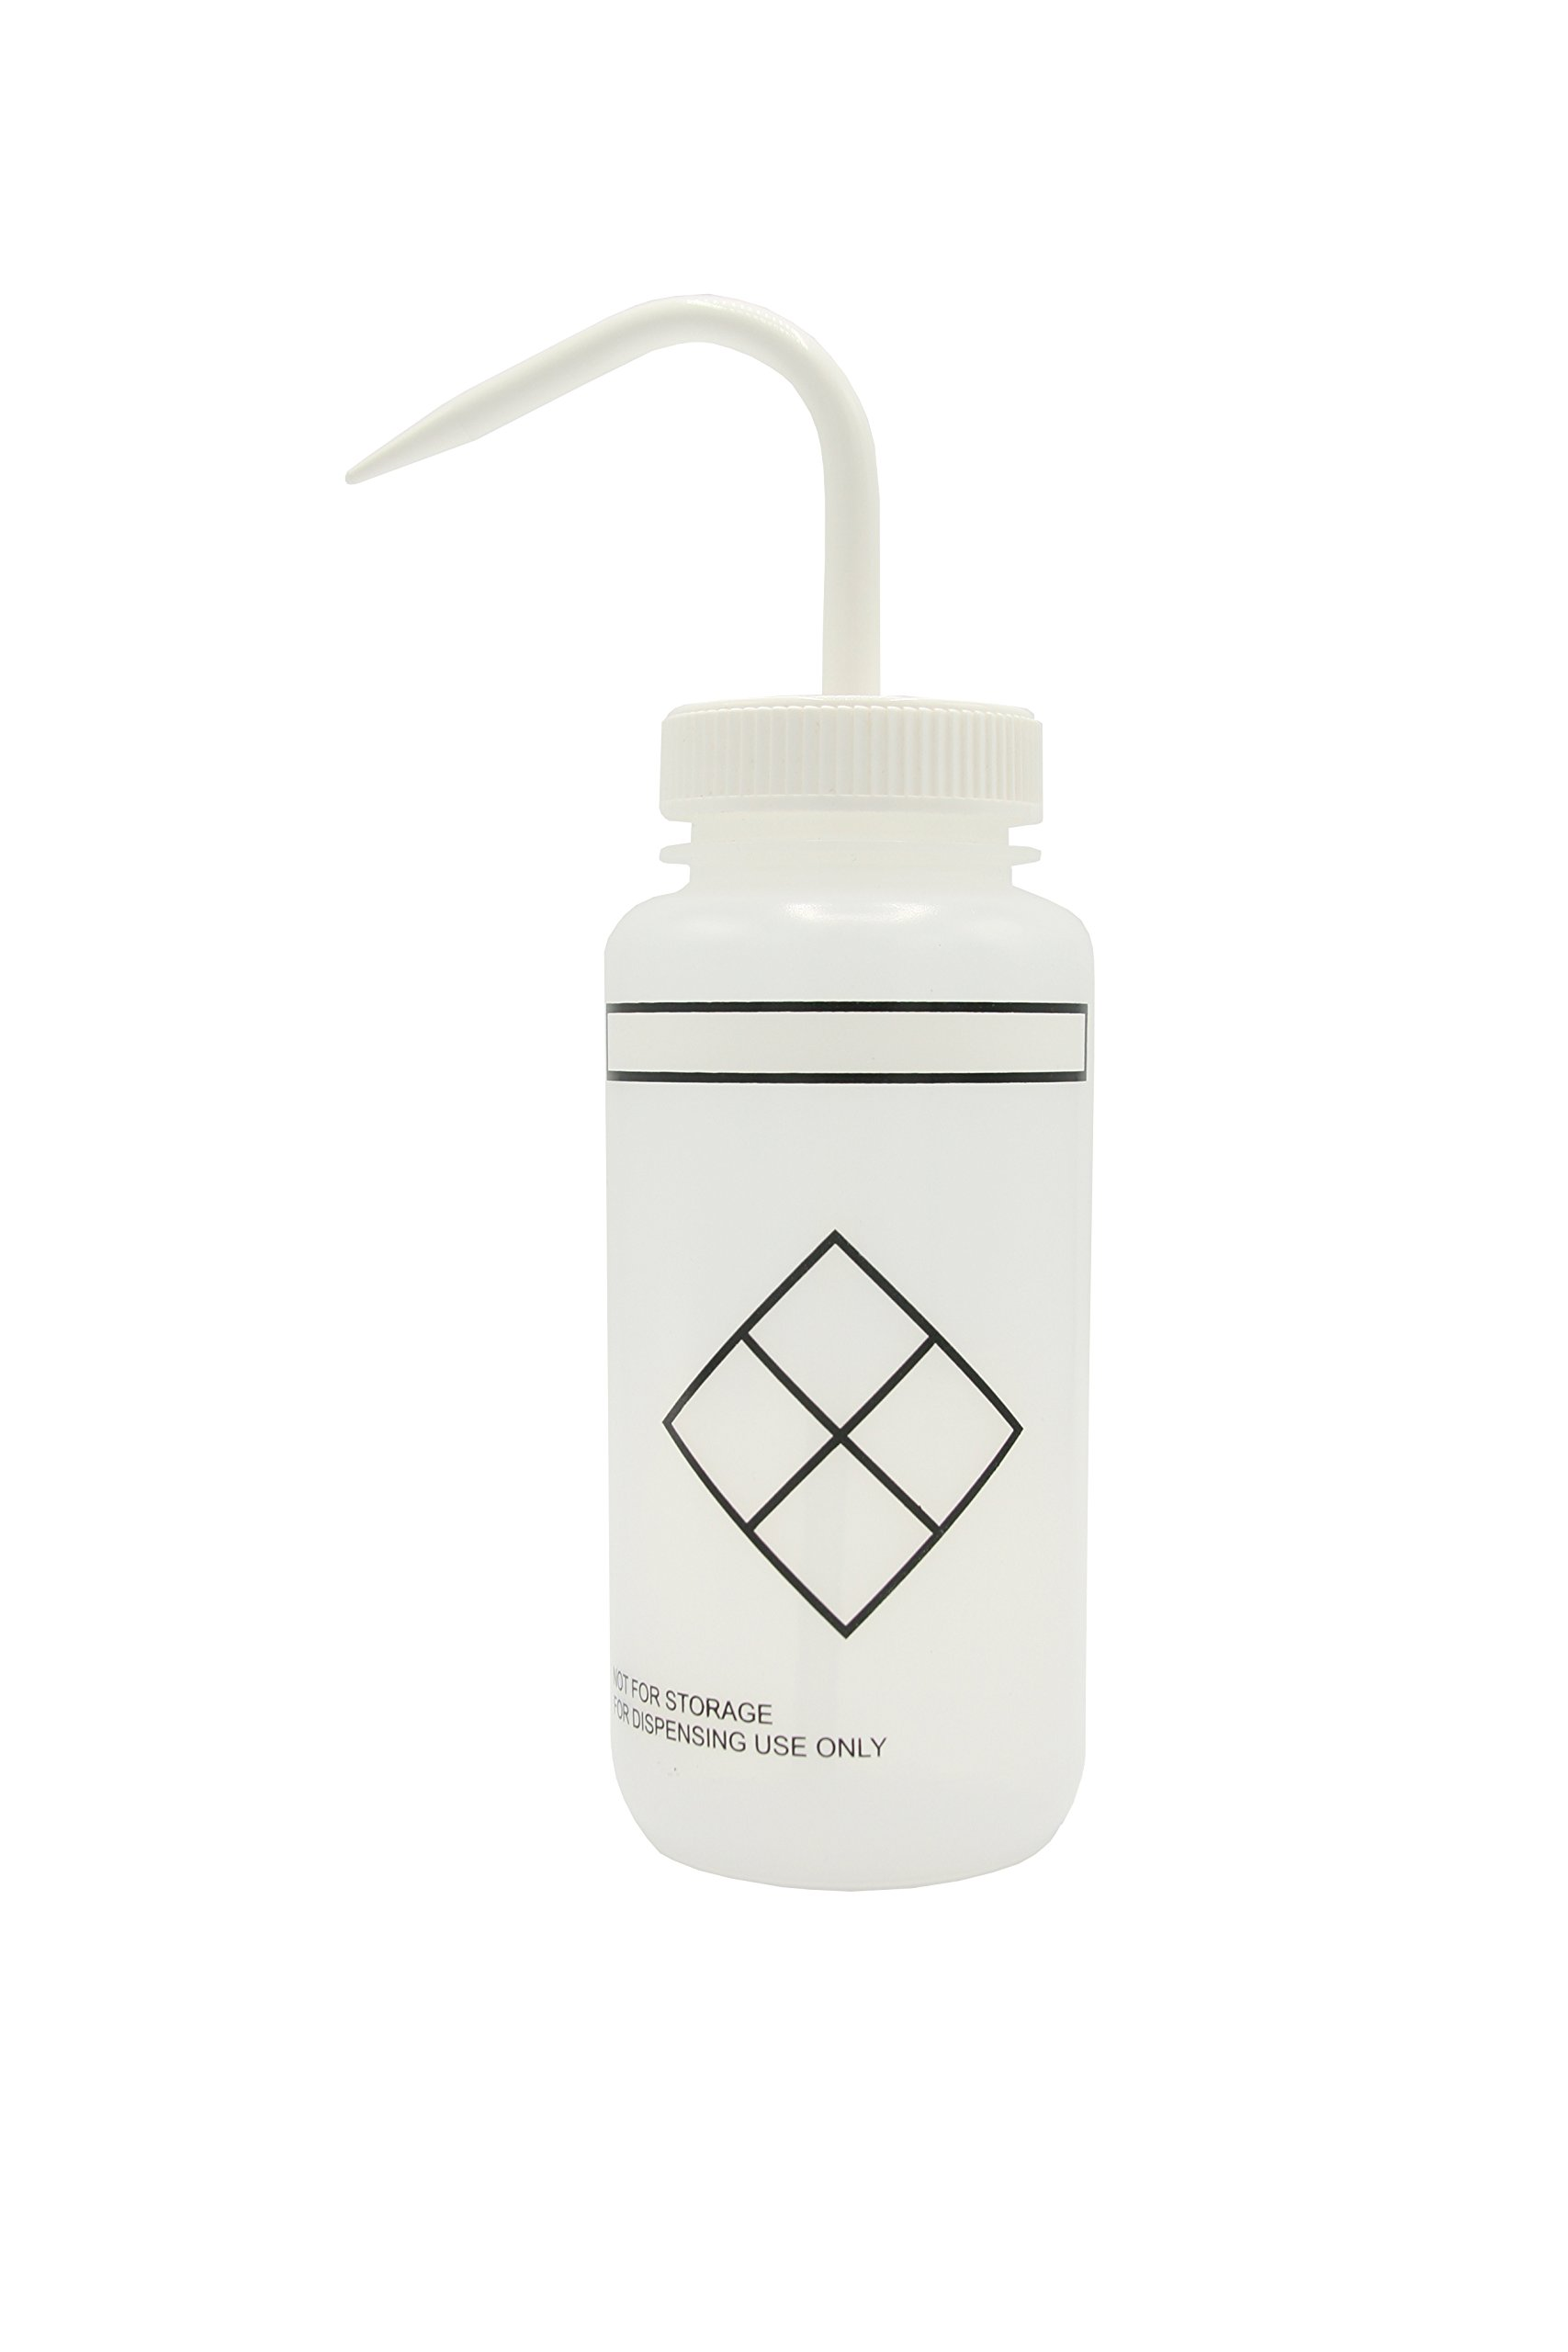 Heathrow Scientific HS120256 Wash Bottles, Safety Labelled, Self Venting, Wide Mouth, Self Labelling, 500 ml (Pack of 6)